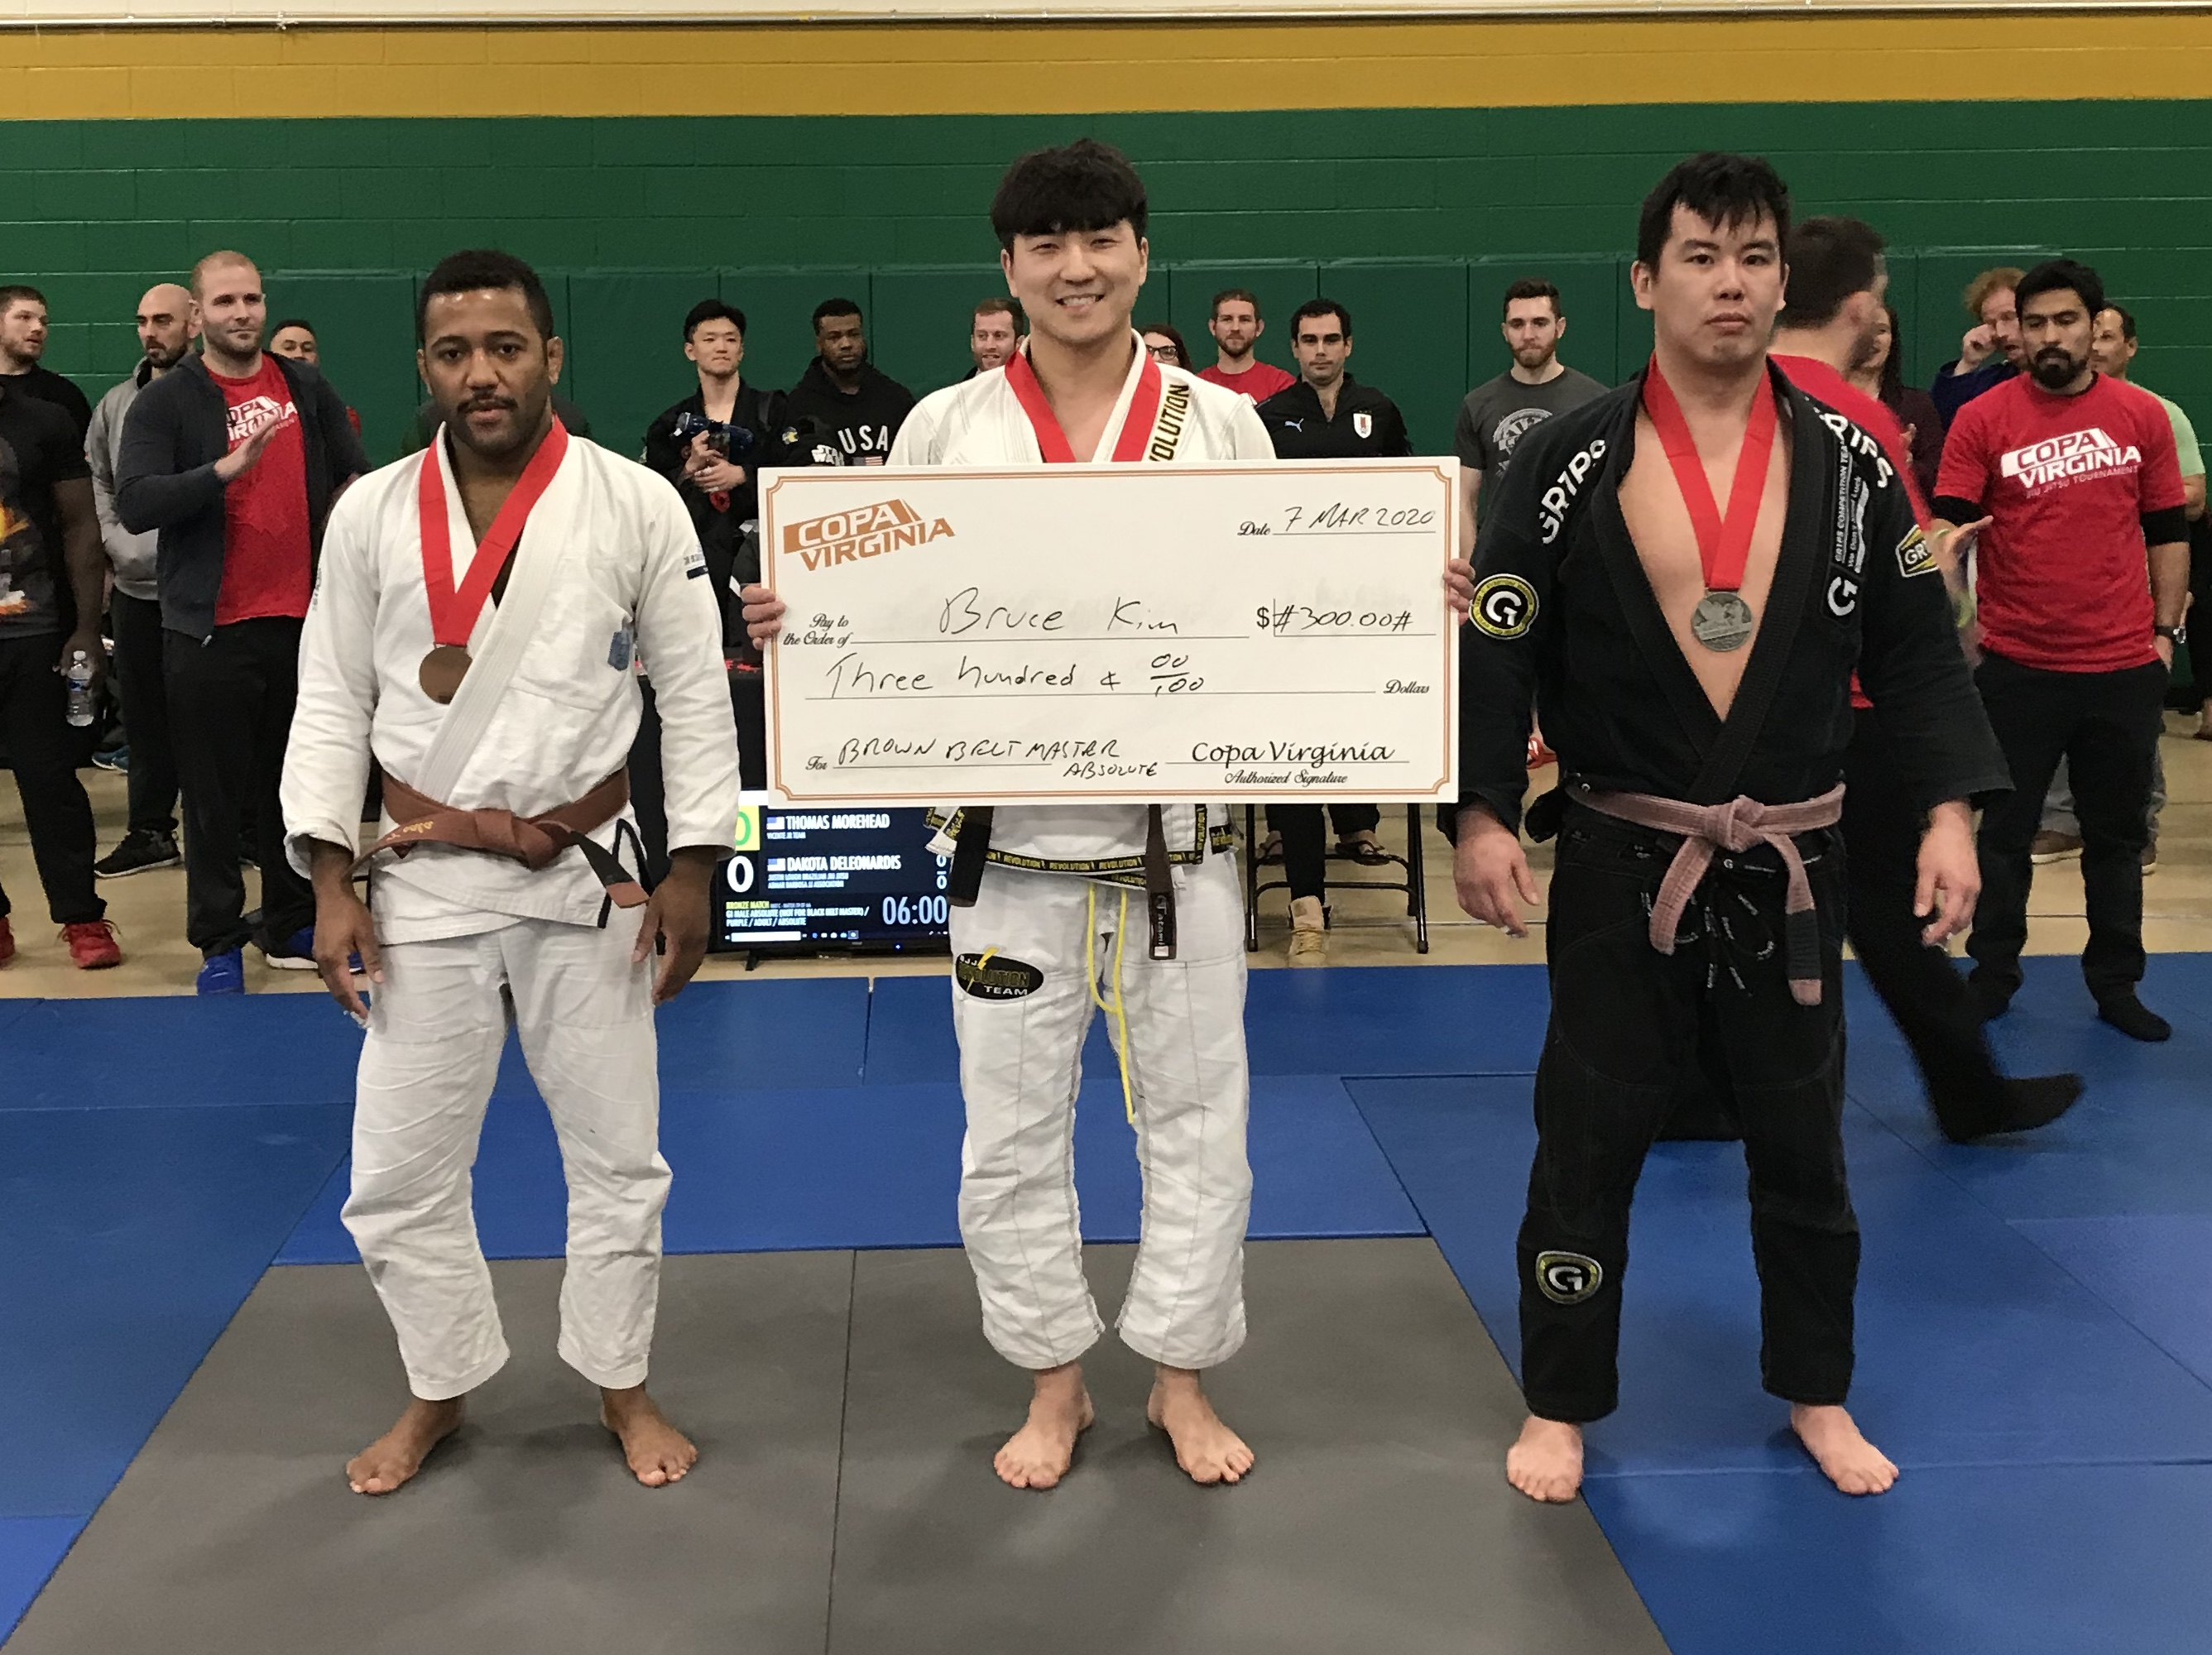 Yoon winning one of the cash-prize divisions once again!